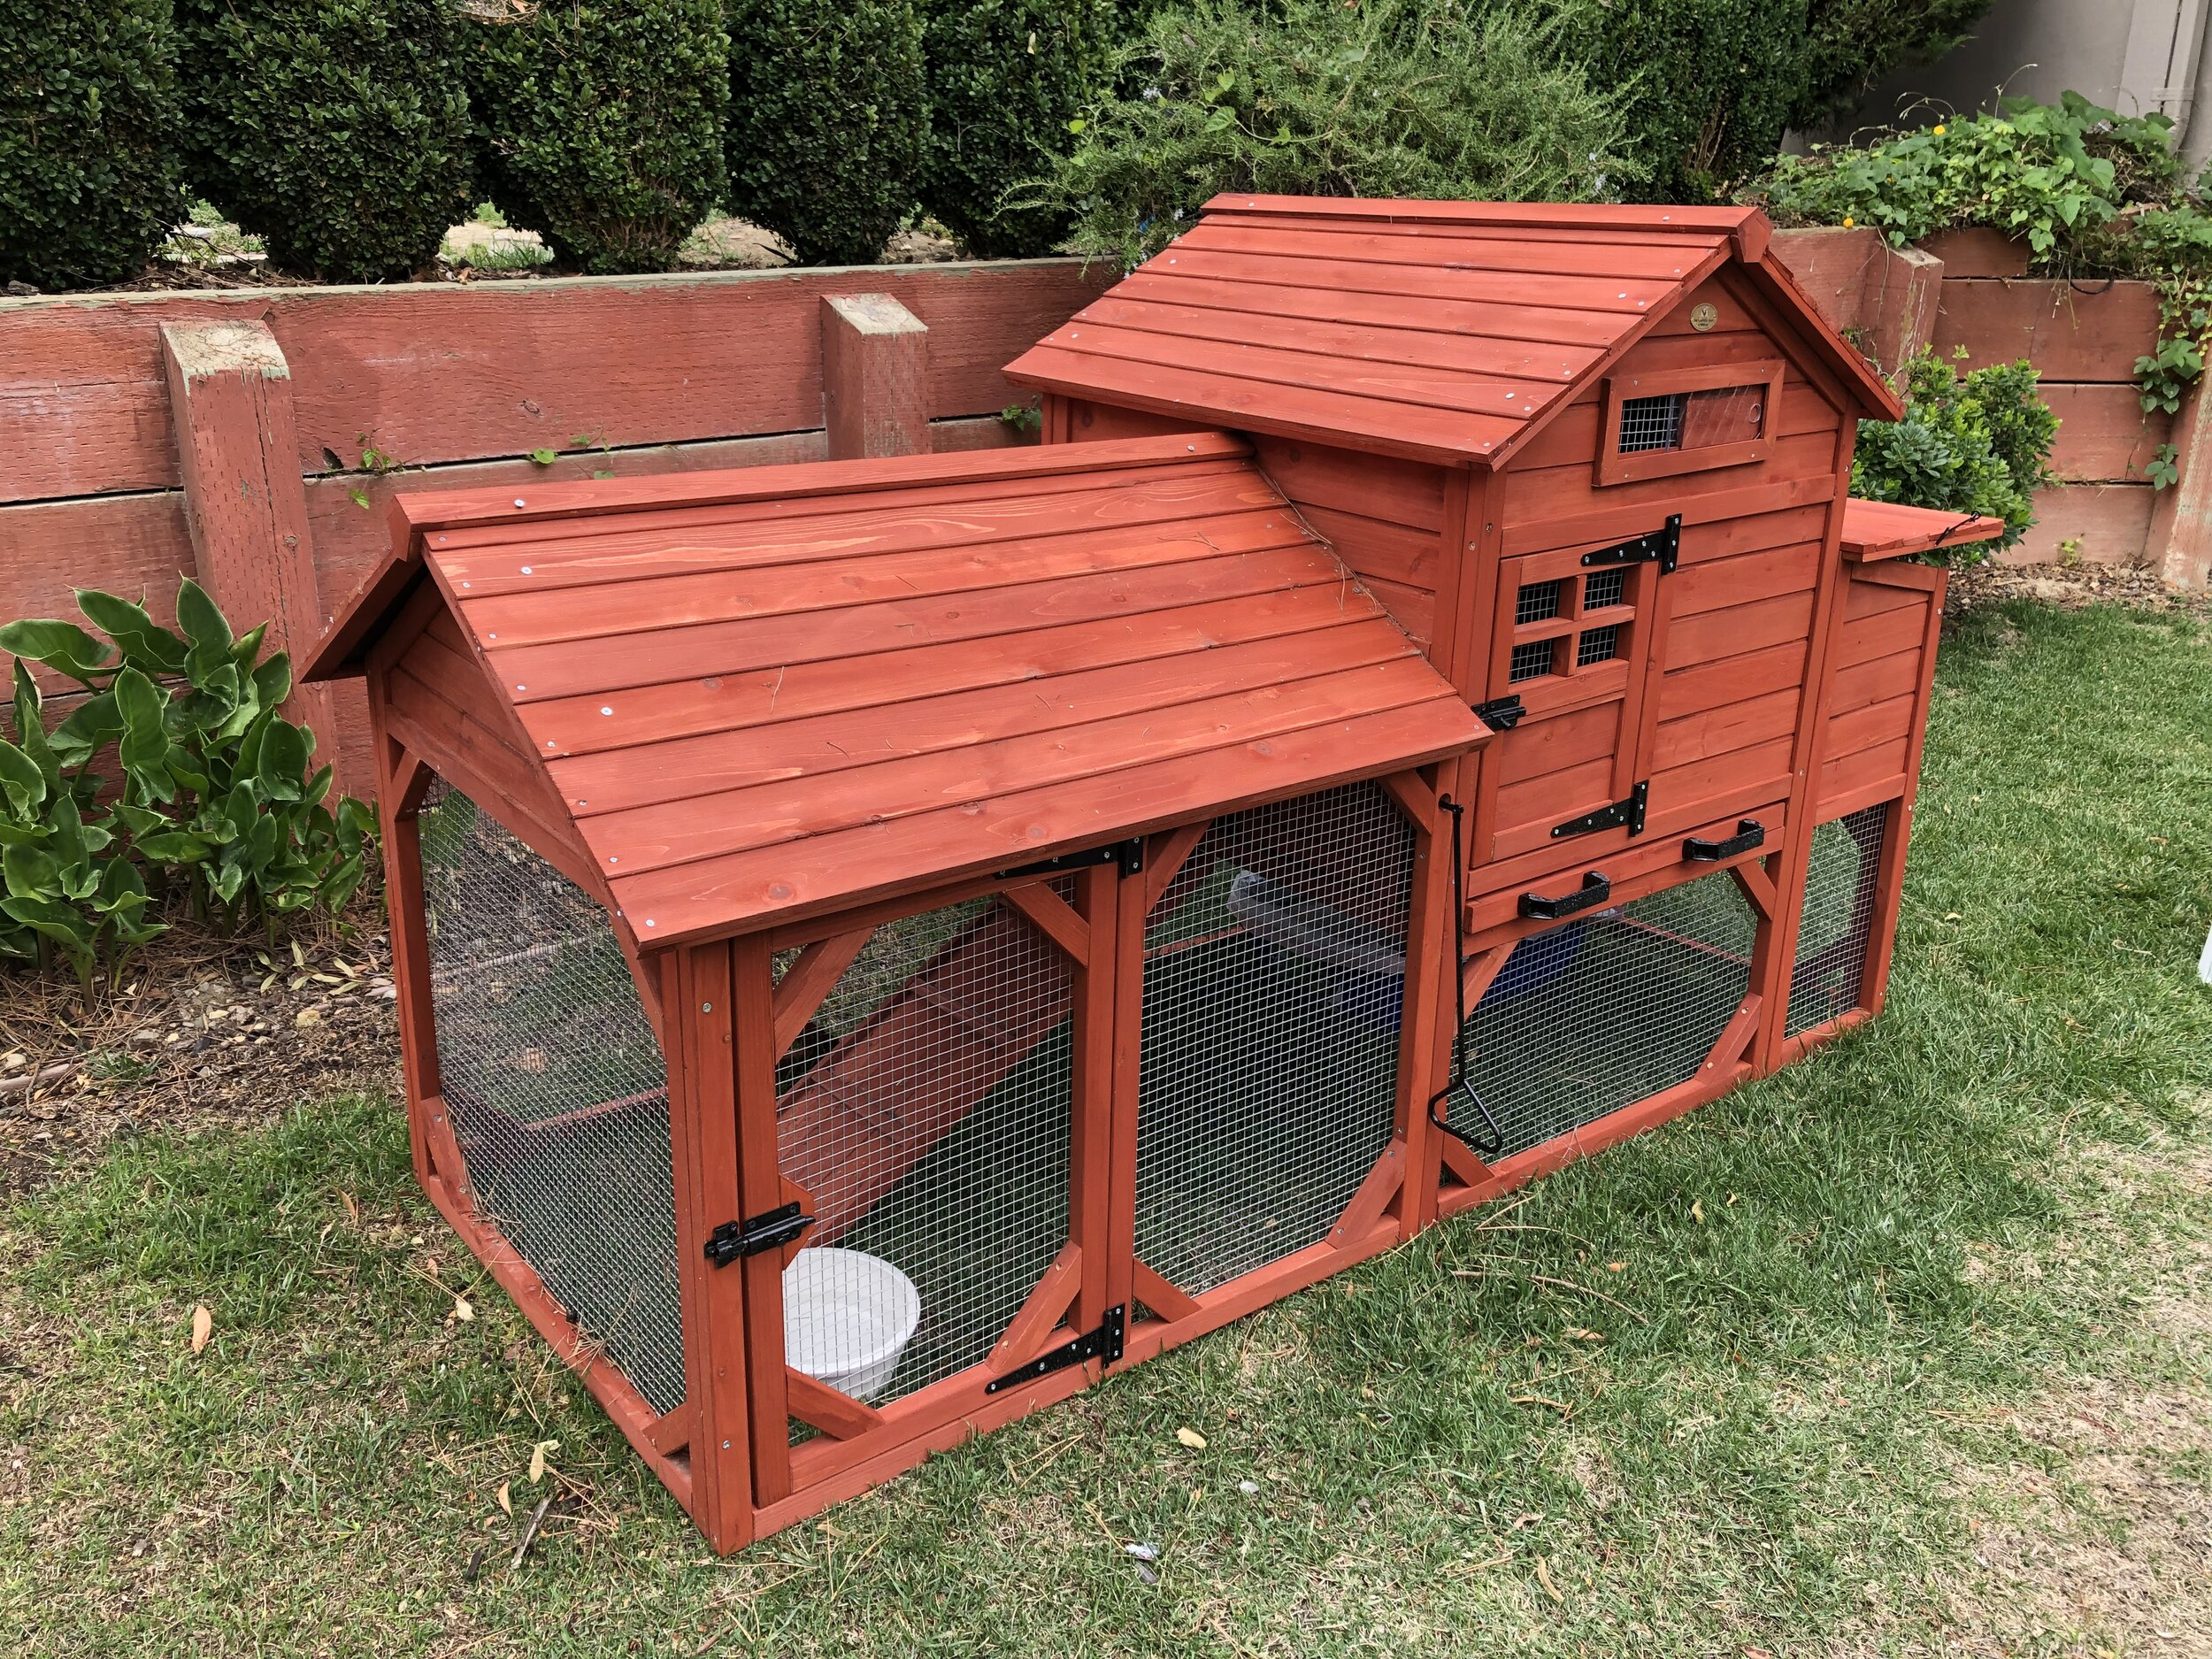 Chicken coops make good places for imprinting and also as a long-term shelter for cats.